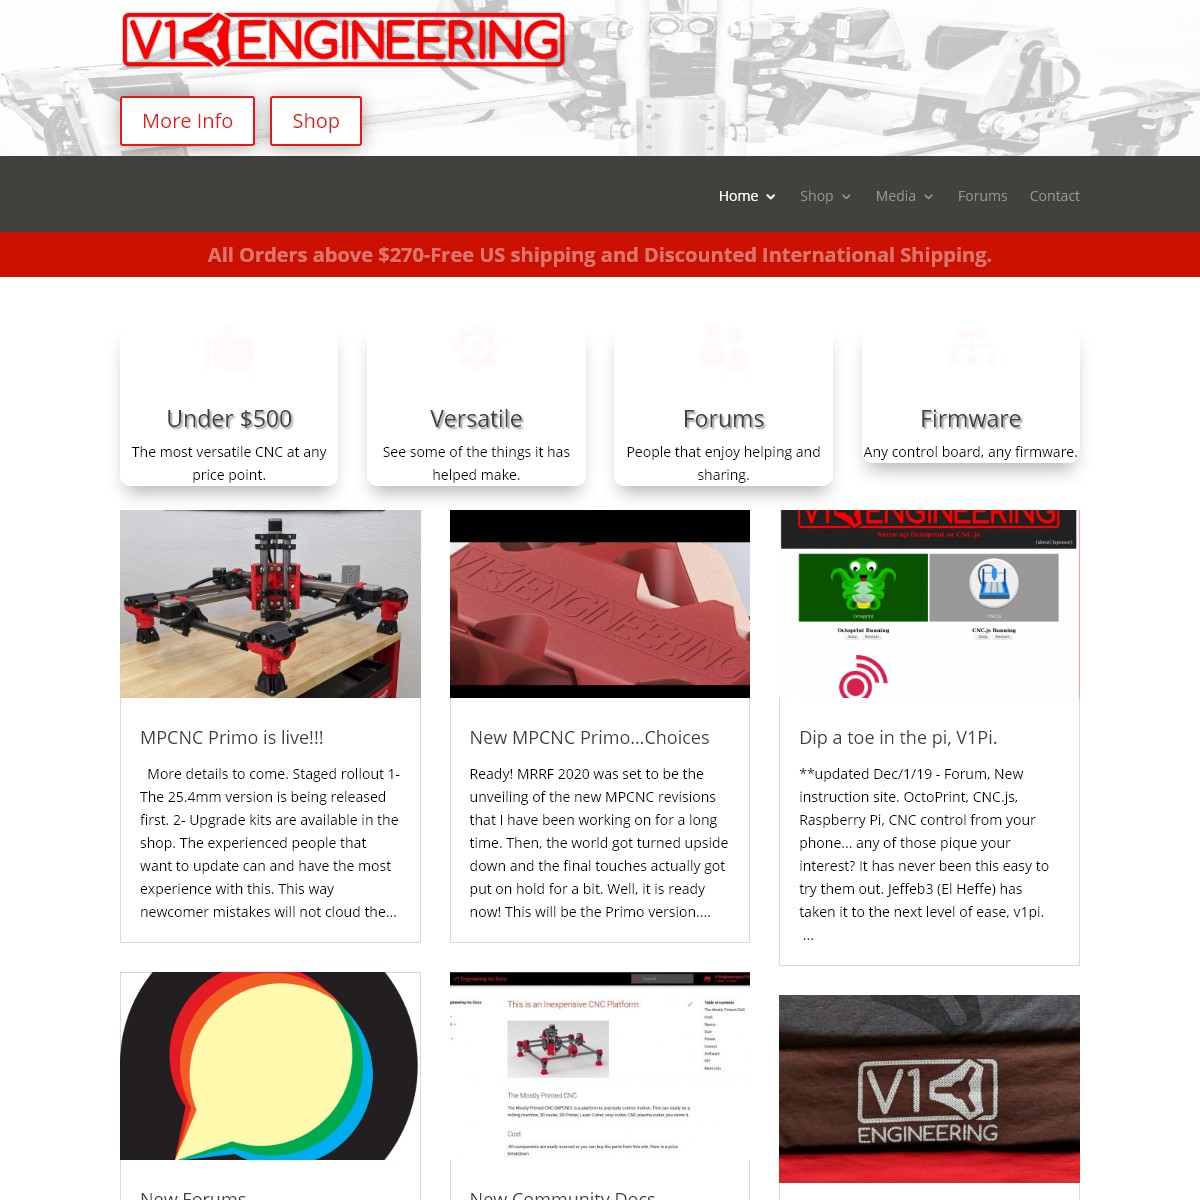 V1 Engineering Inc - DIY Micro Manufacturing Machines and Supplies.